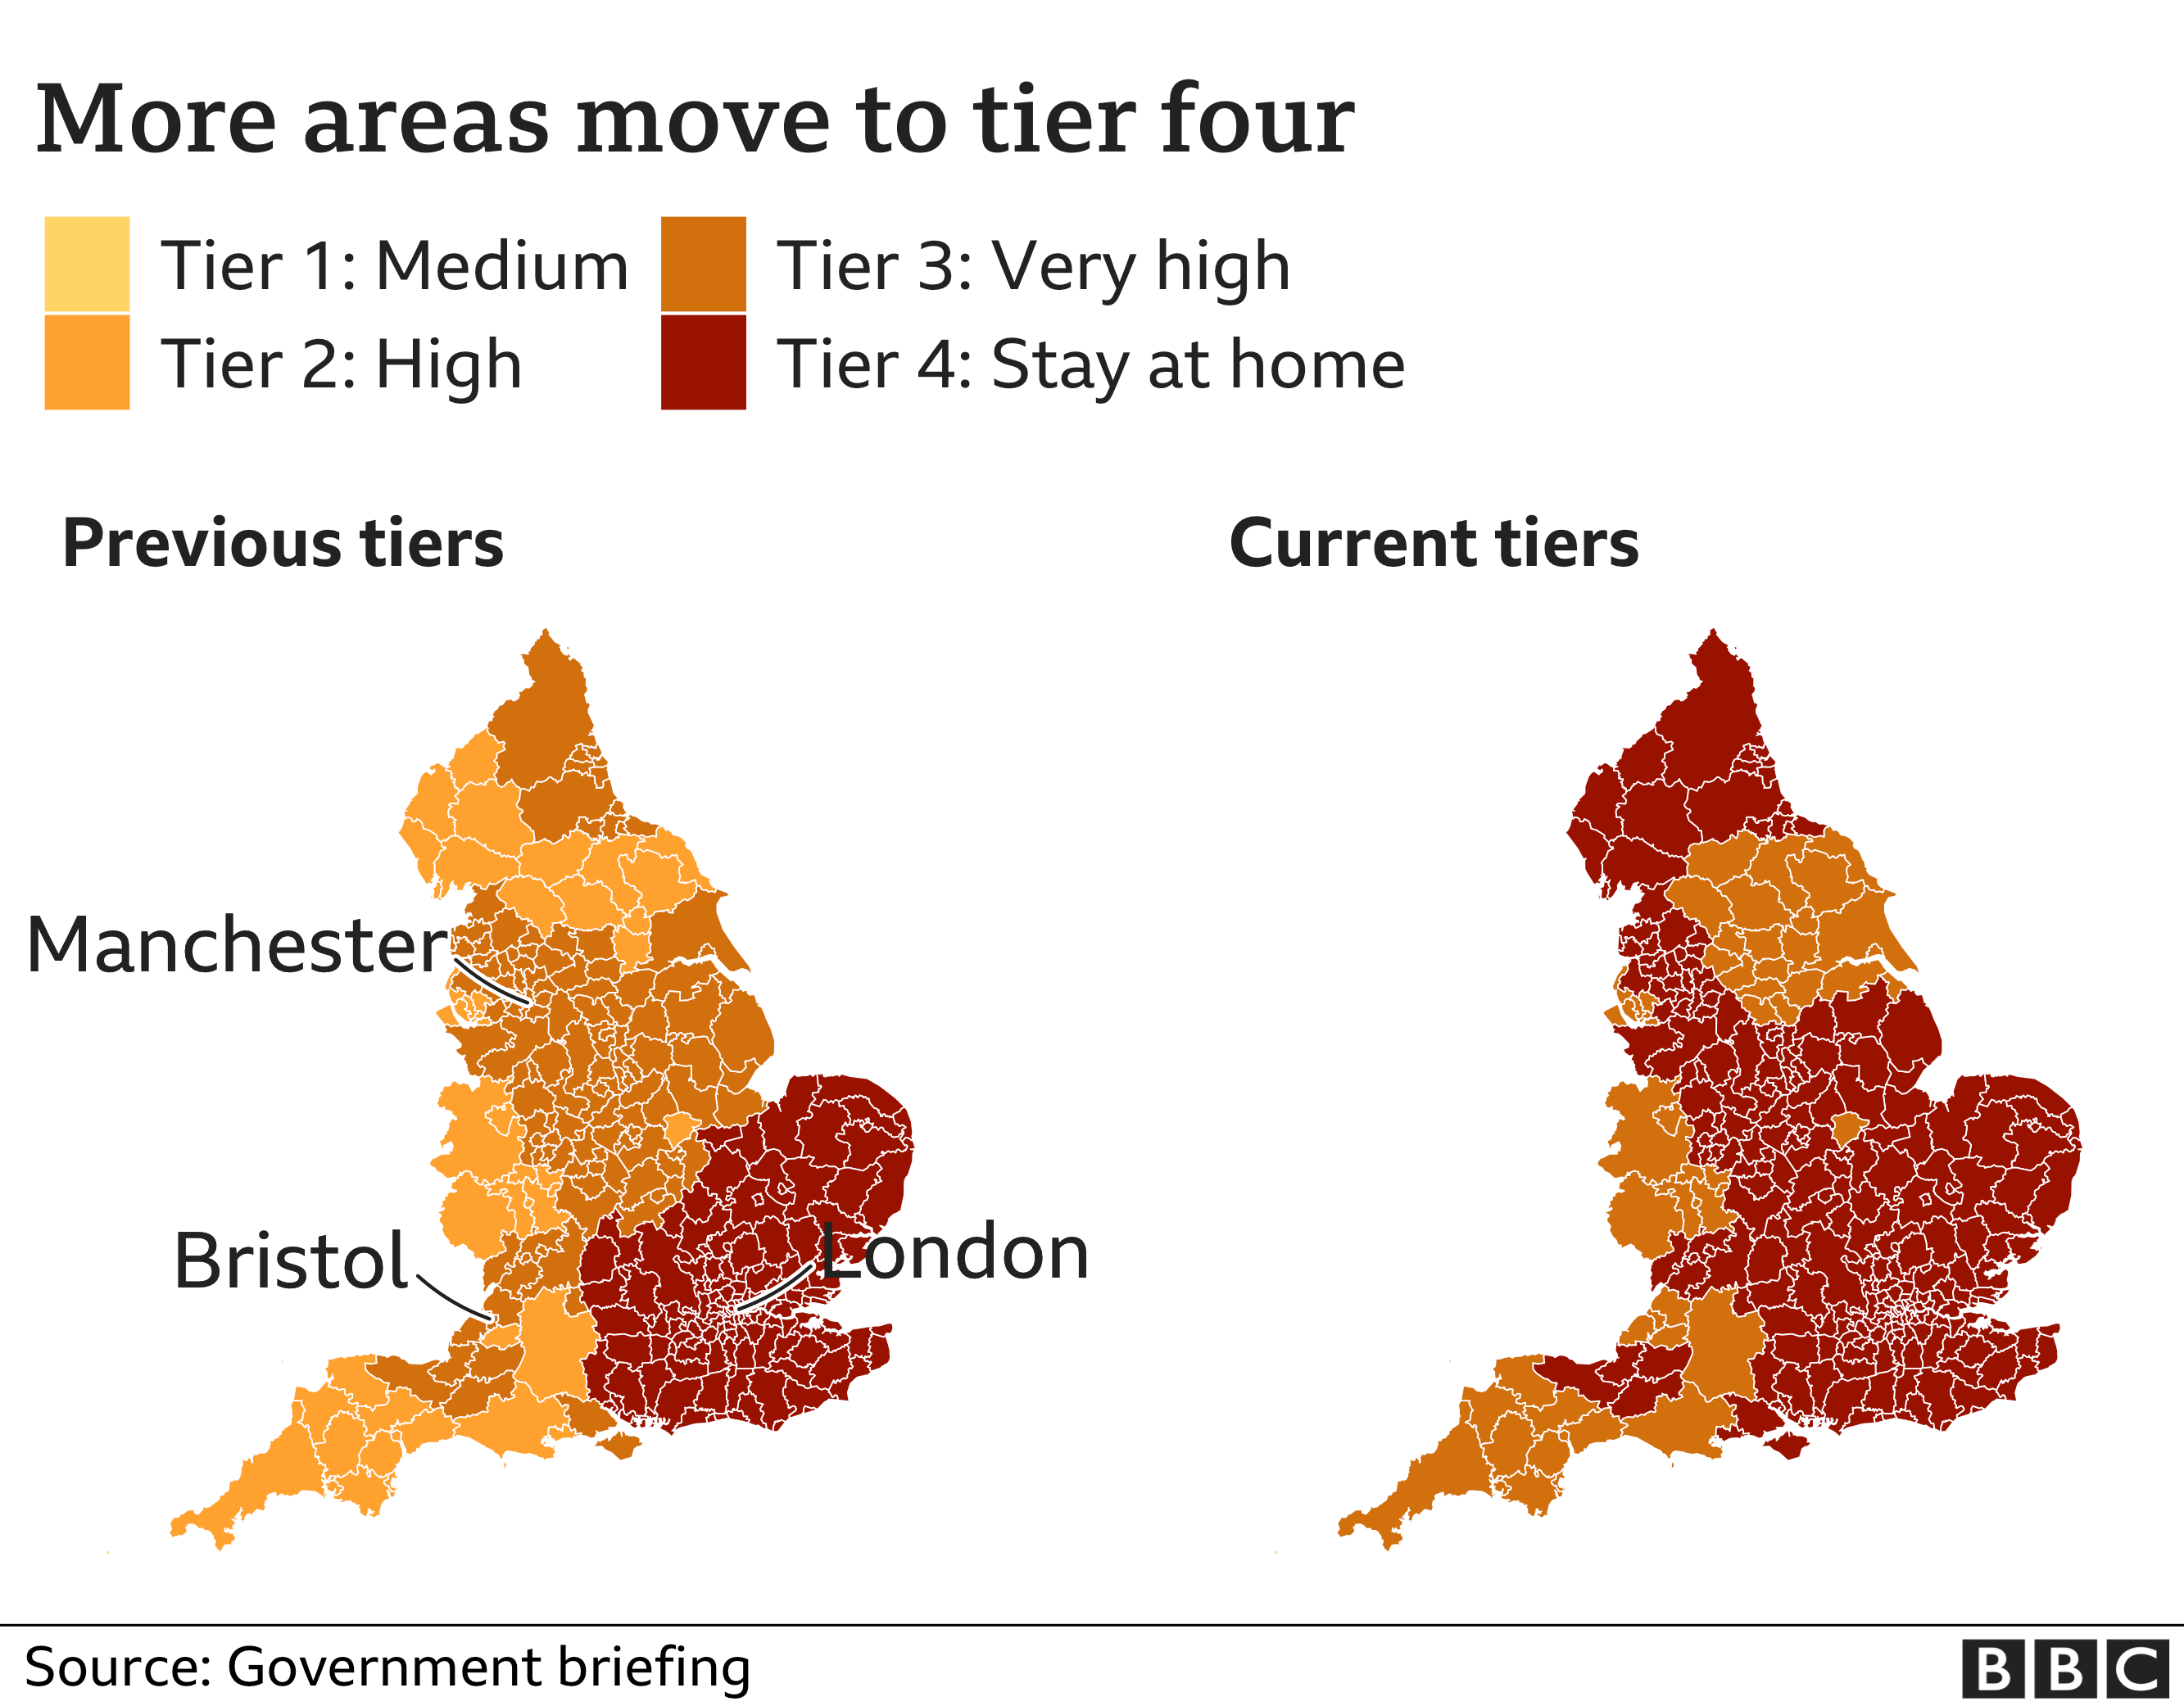 Map showing new tier areas